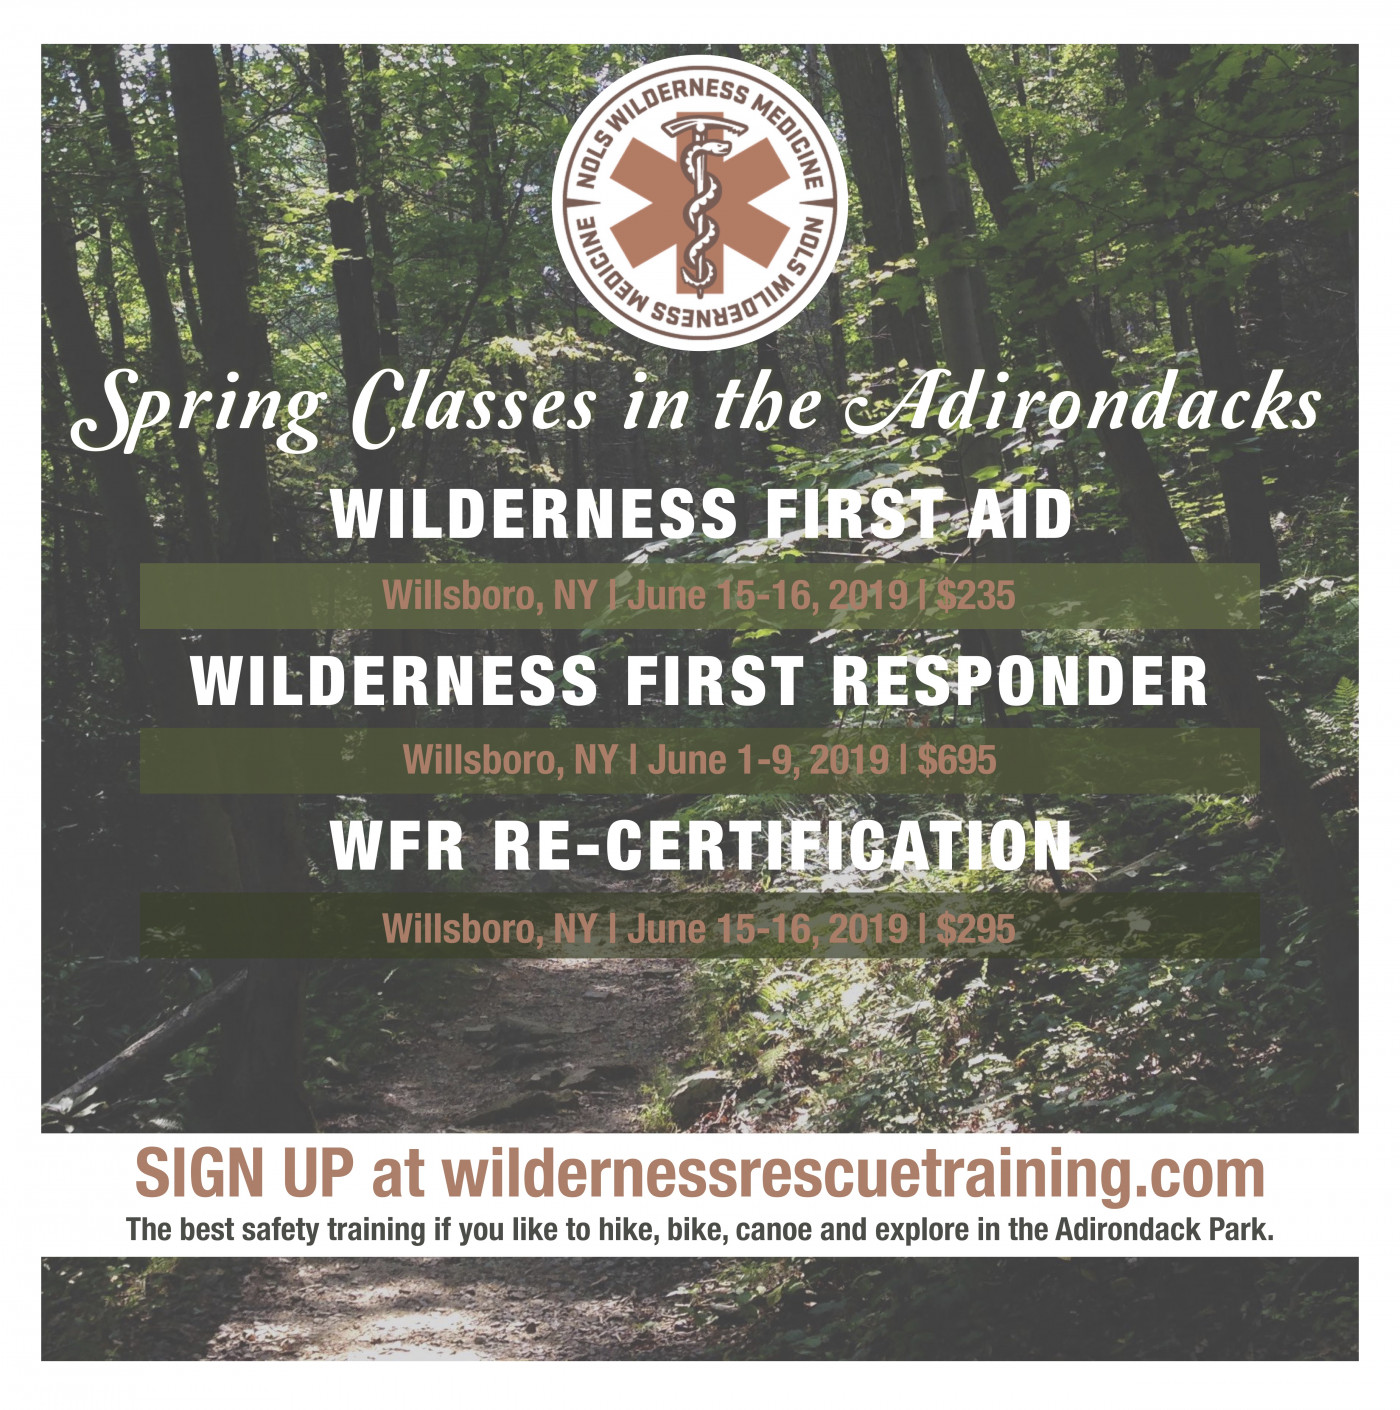 Wilderness First Responder